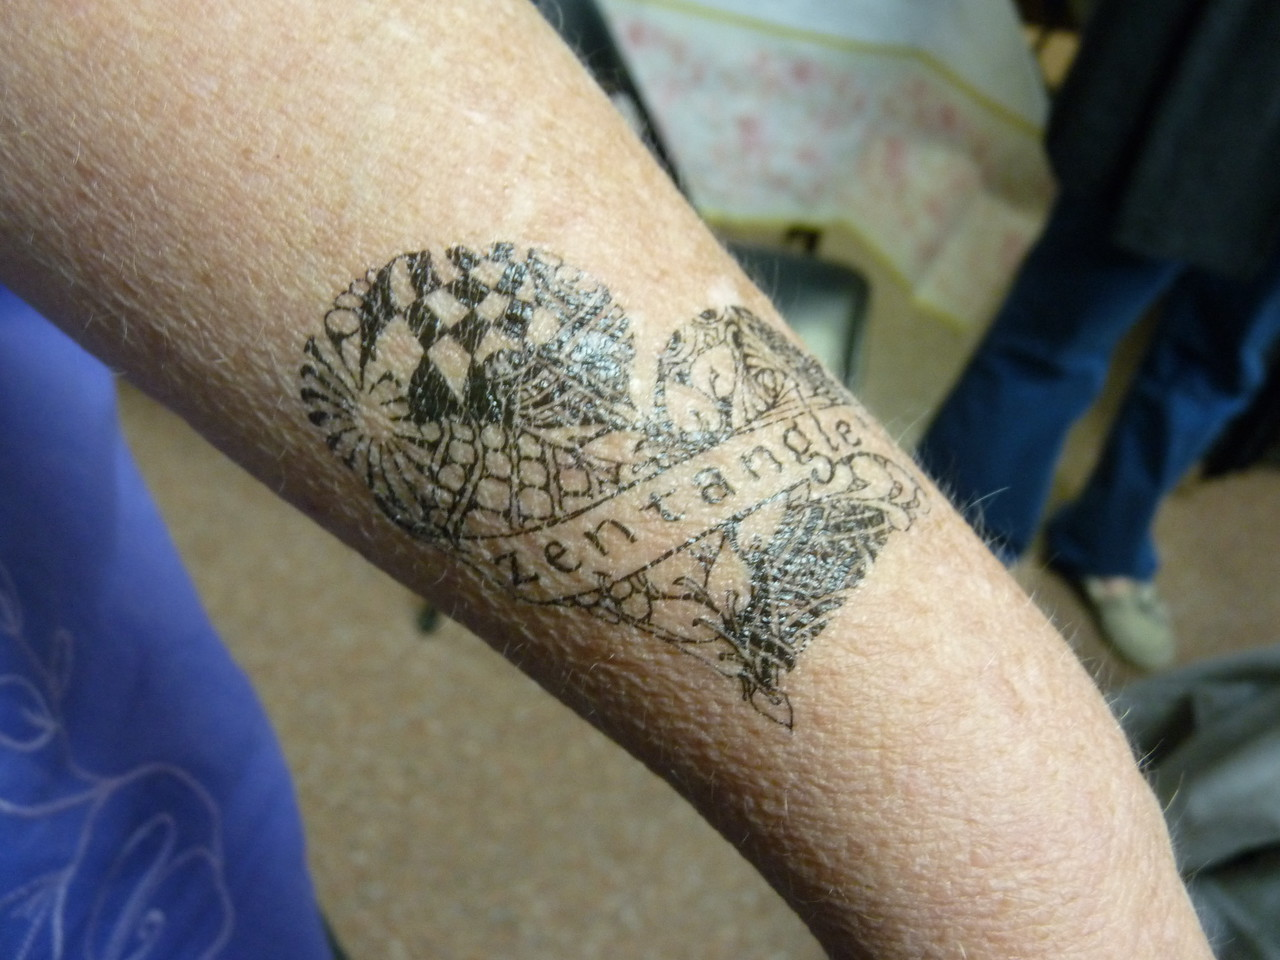 Suzanne shows off her Zentangle tattoo!